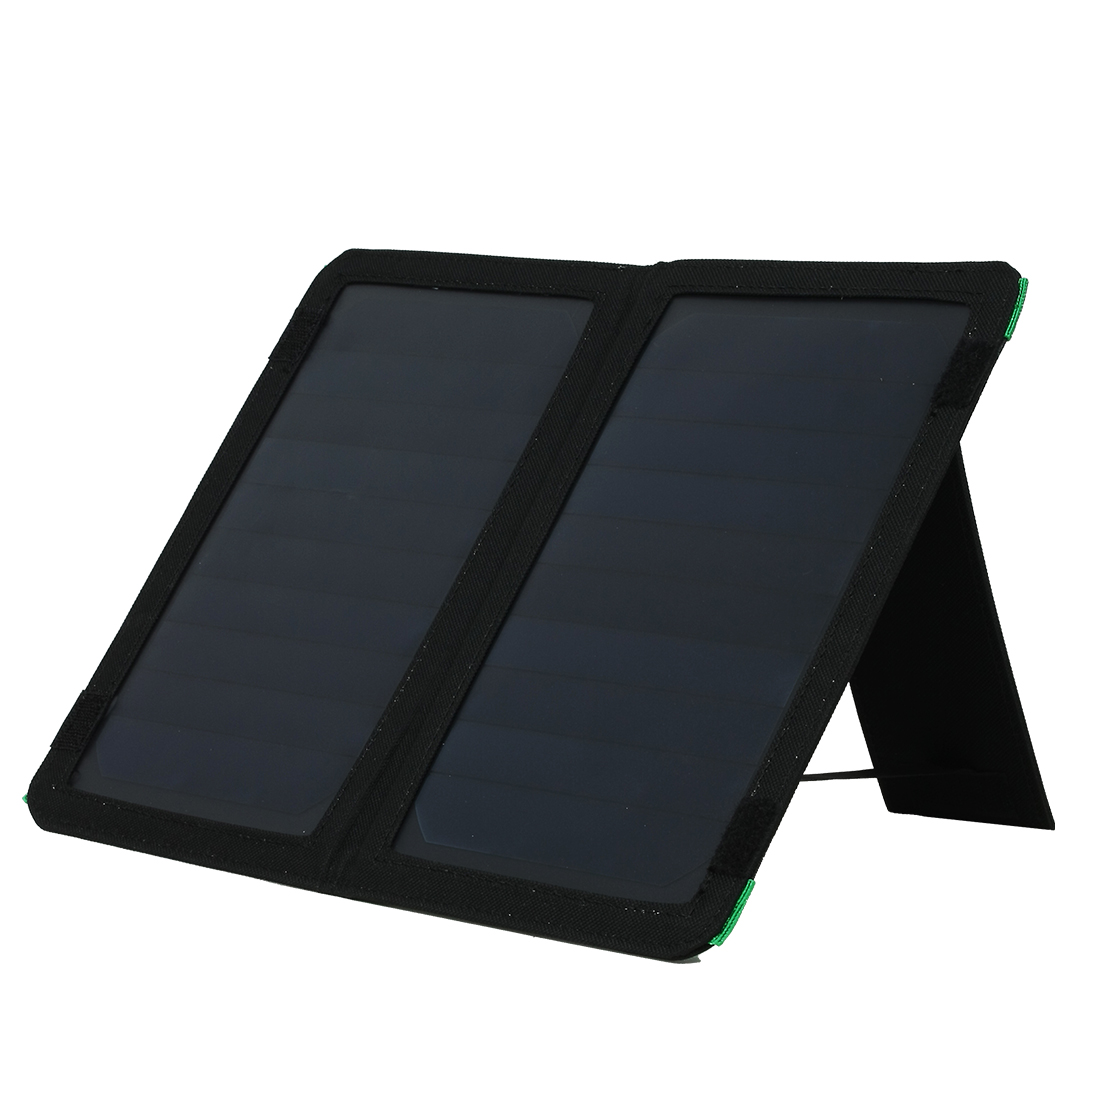 10W Single Ports USB Foldable Solar Panel Charger for Smart Phone Portable Pad More Black